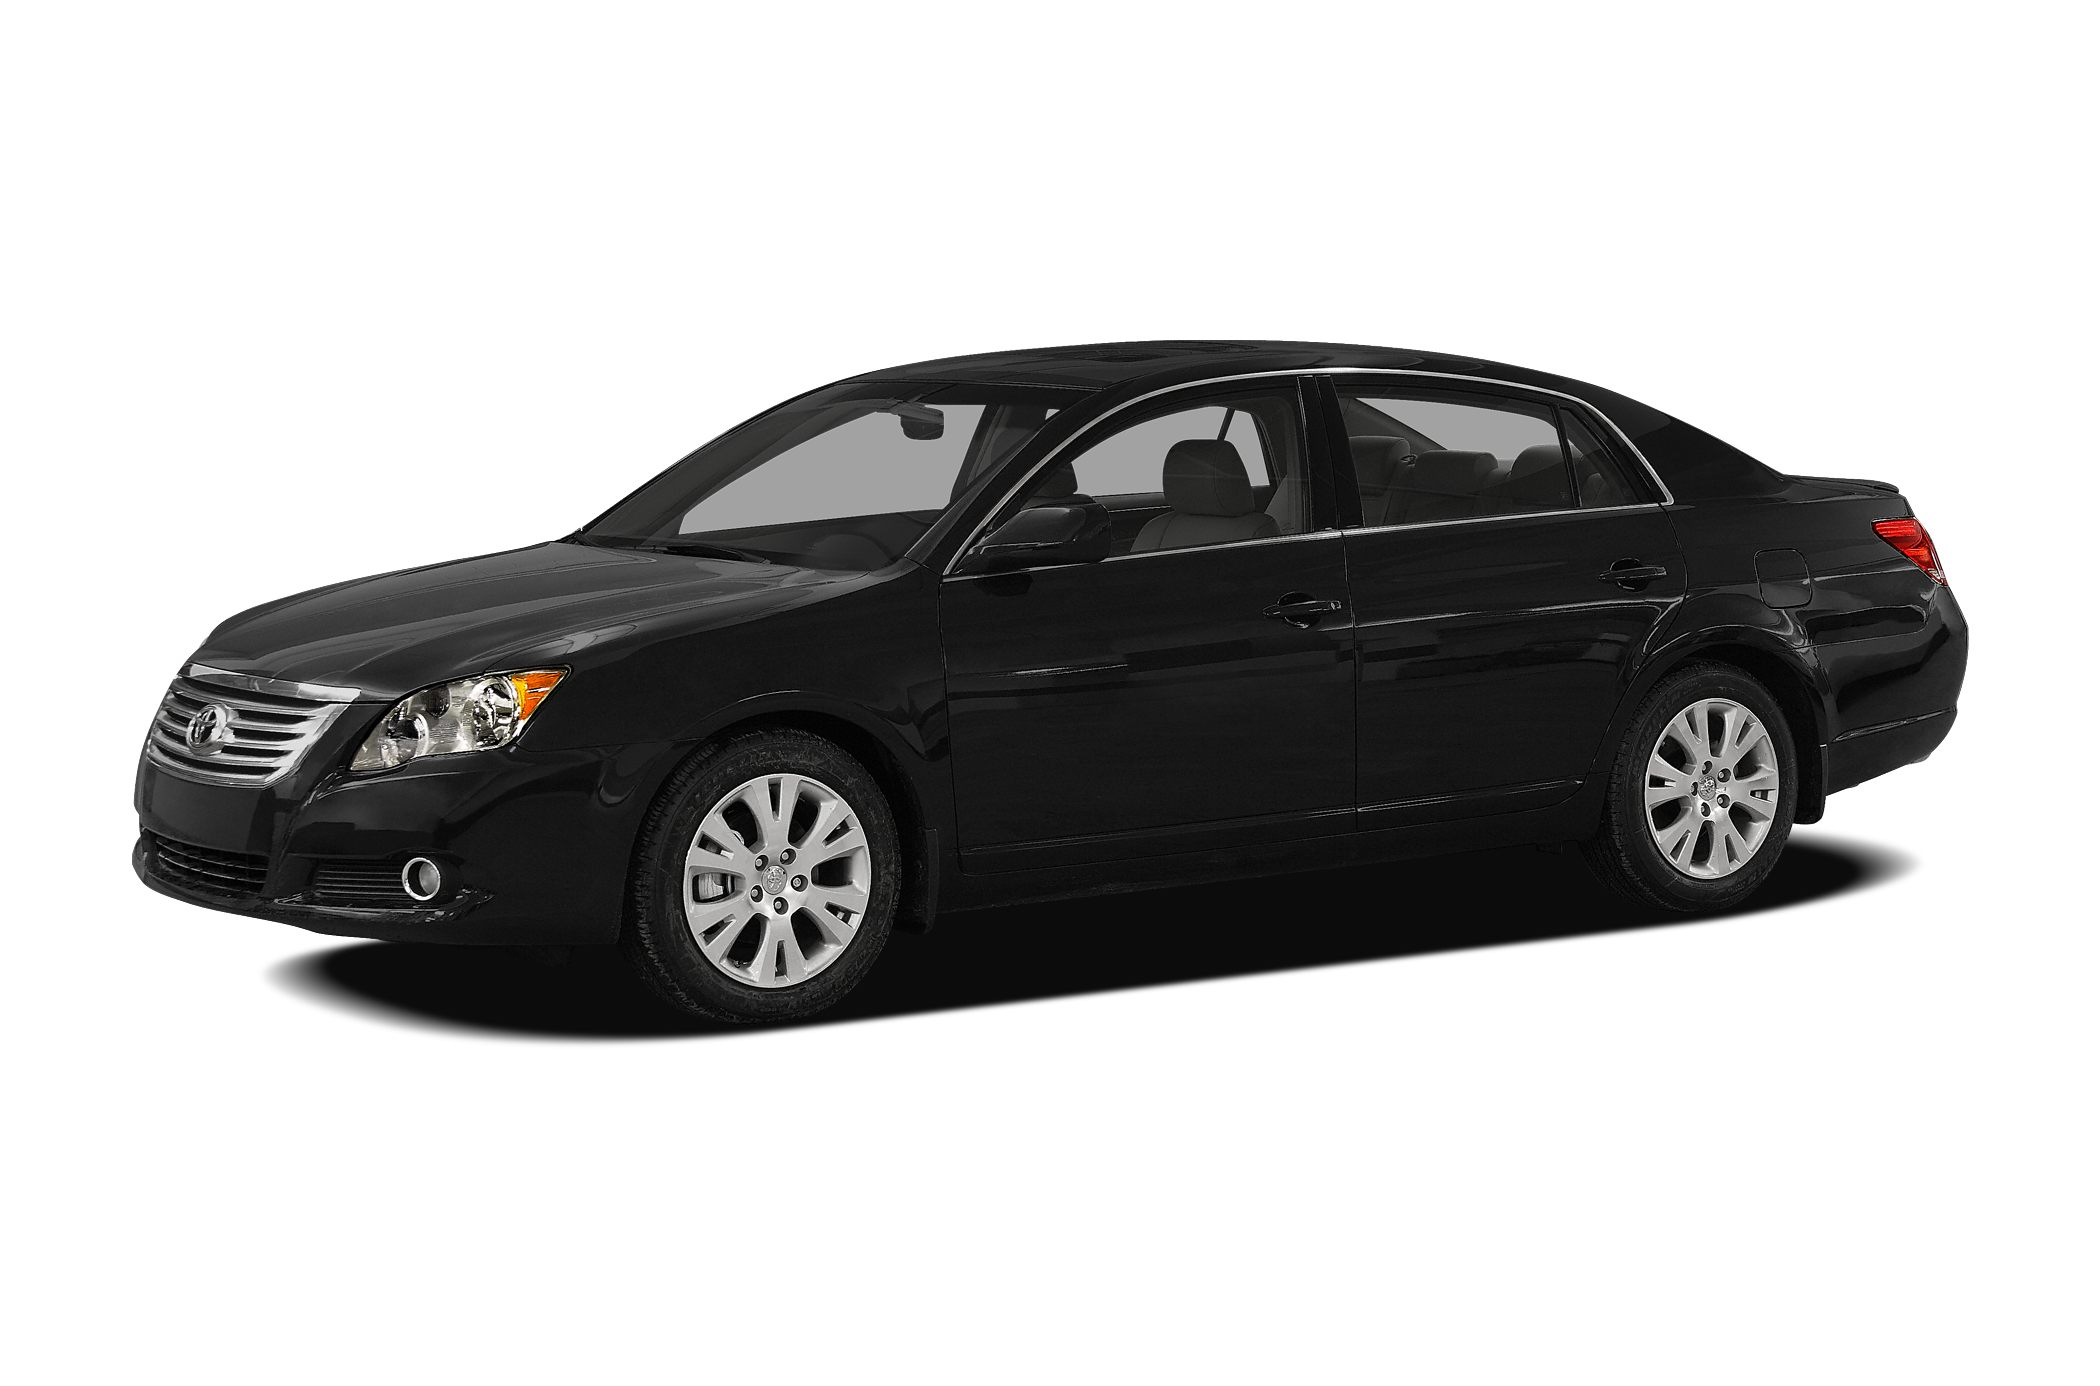 2008 Toyota Avalon Limited Sedan for sale in Harrisburg for $15,990 with 65,639 miles.